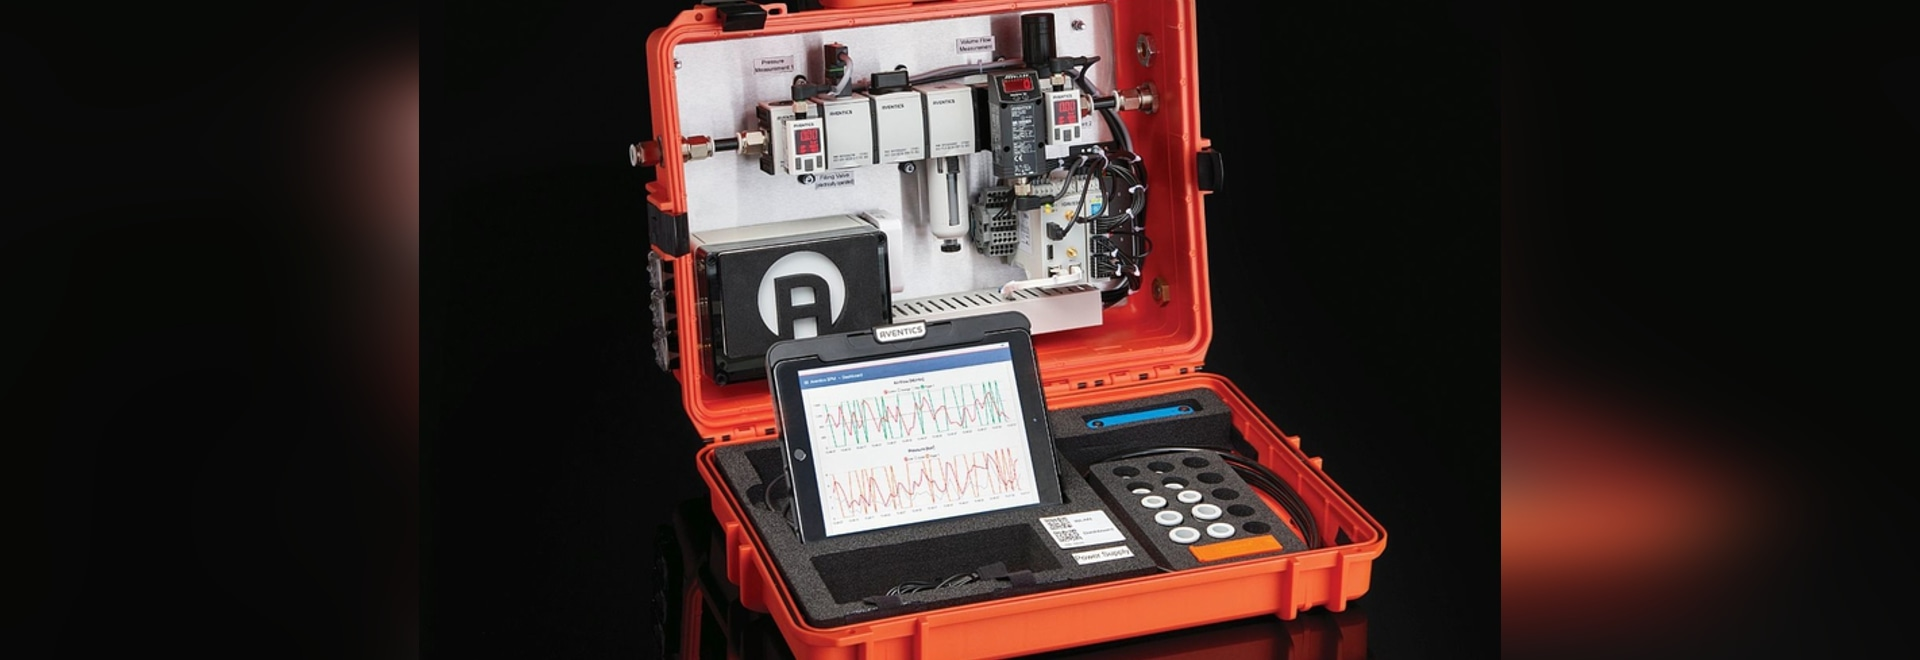 With the Smart Pneumatic Analyzer, Emerson can demonstrate to a user how easy it is to utilize IIoT in their facility.